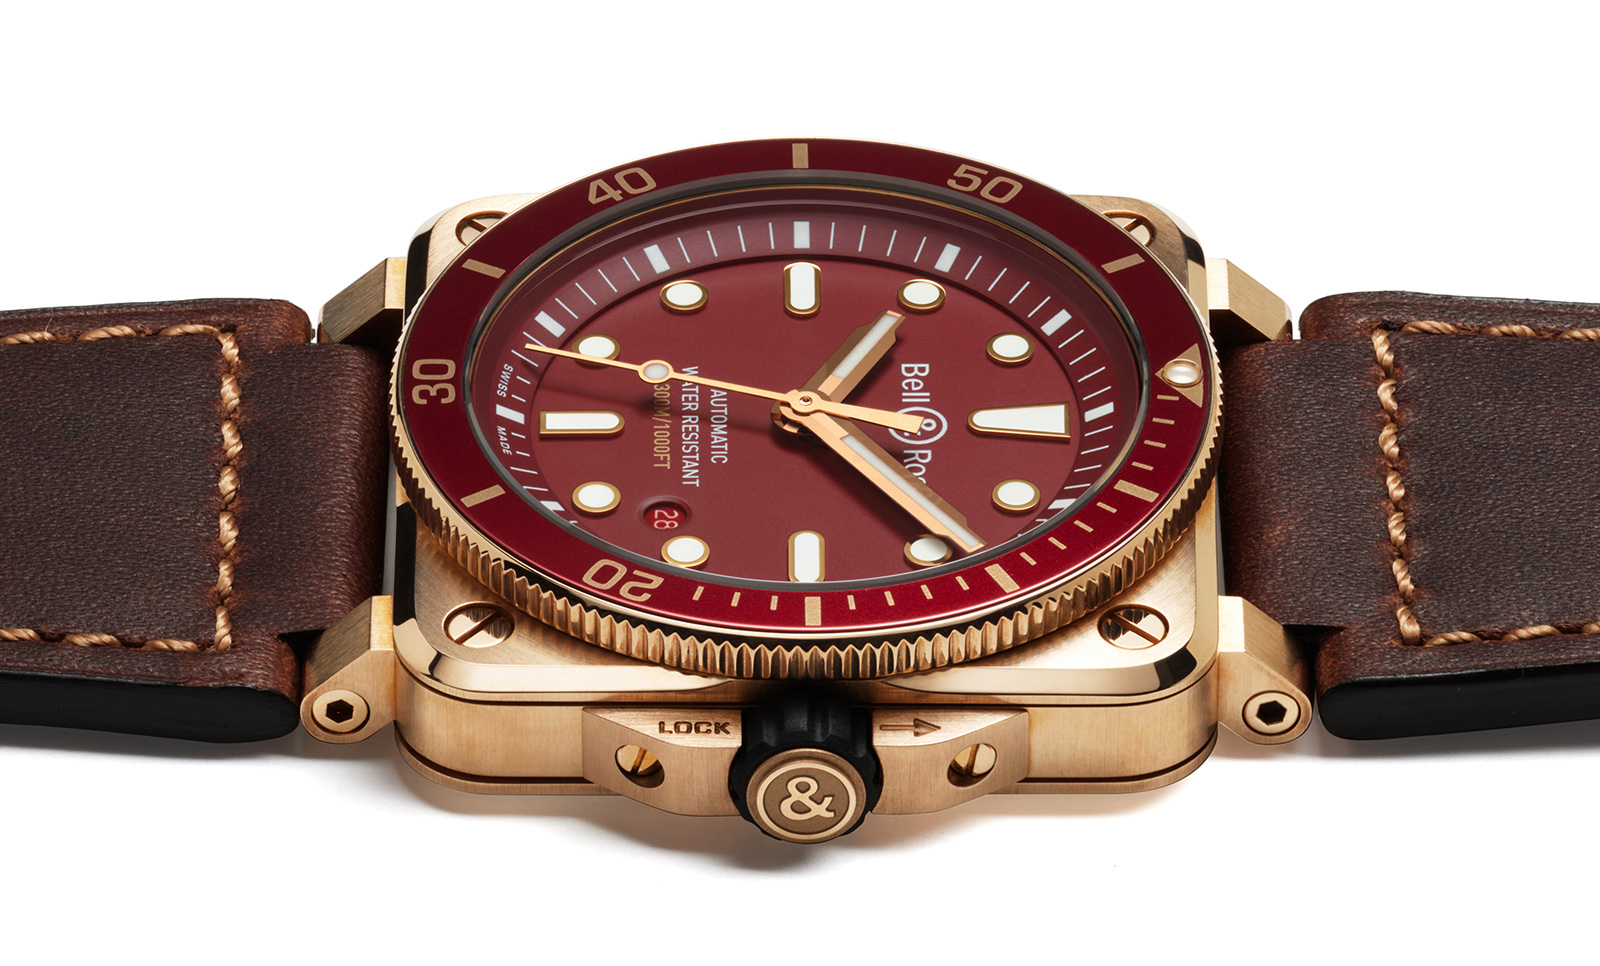 Bell & Ross BR 03-92 Diver Red Bronze lteral